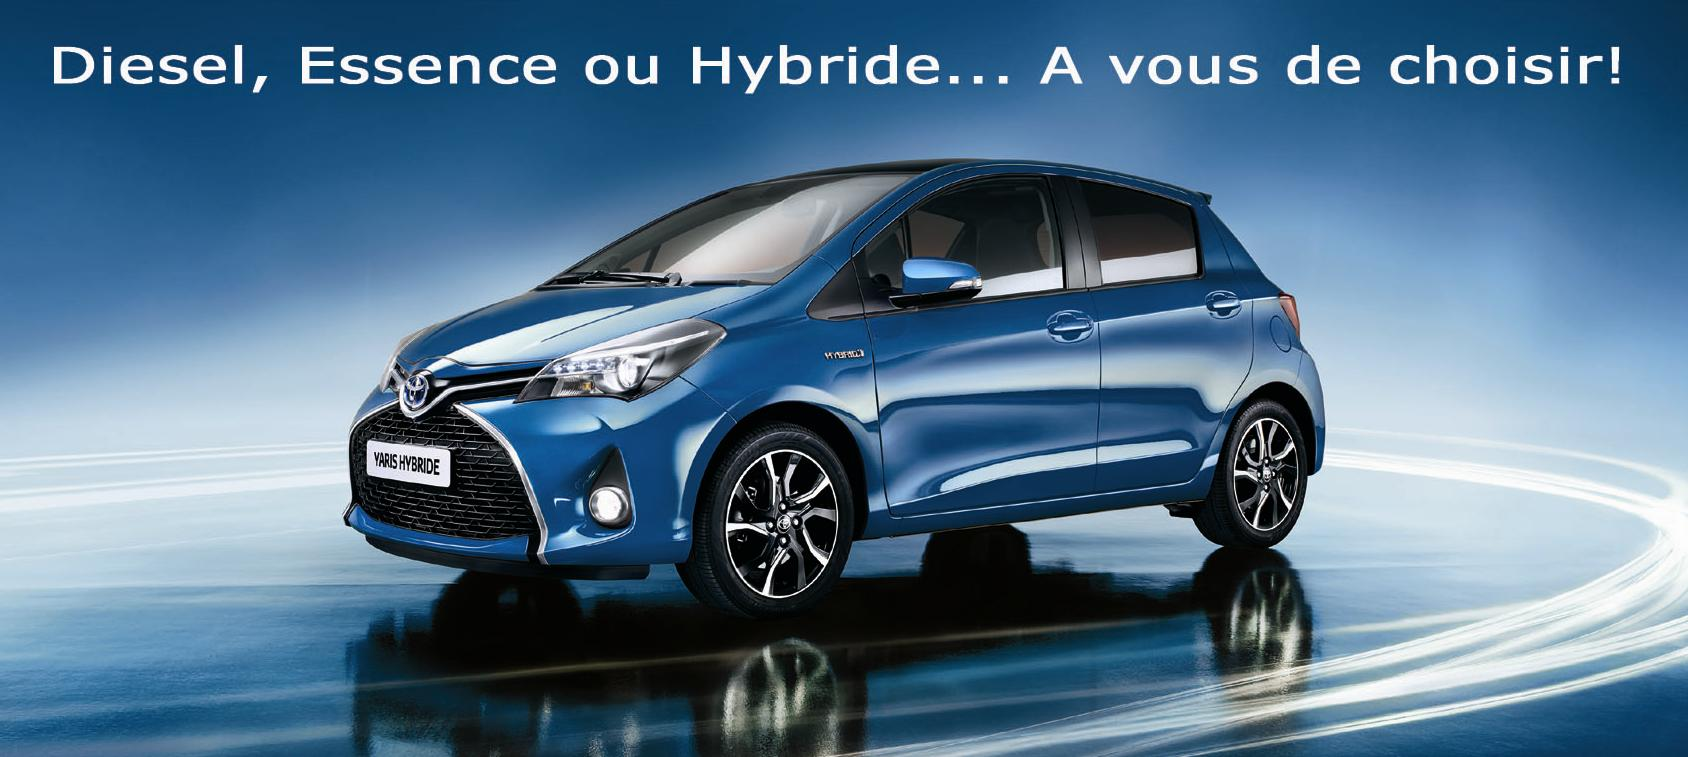 Toyota garage albarede journ e portes ouvertes blog for Garage peugeot rodez